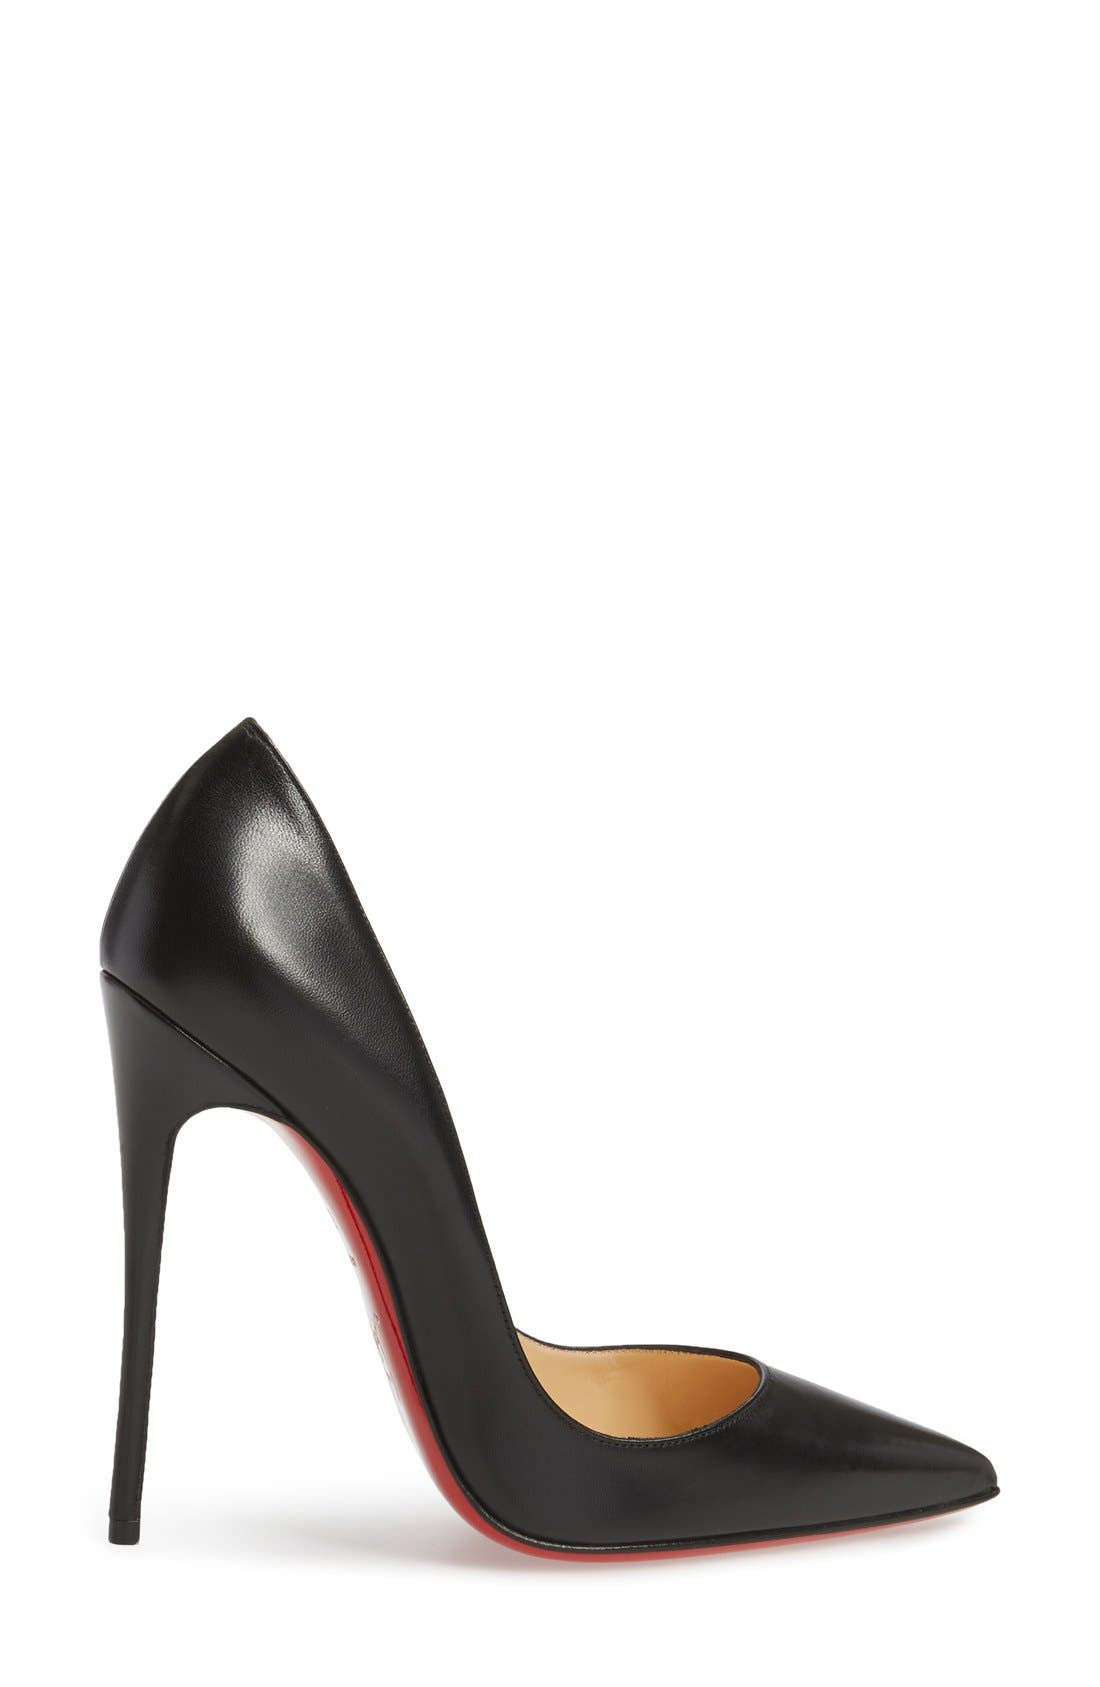 'So Kate' Pointy Toe Leather Pump,                             Alternate thumbnail 5, color,                             001